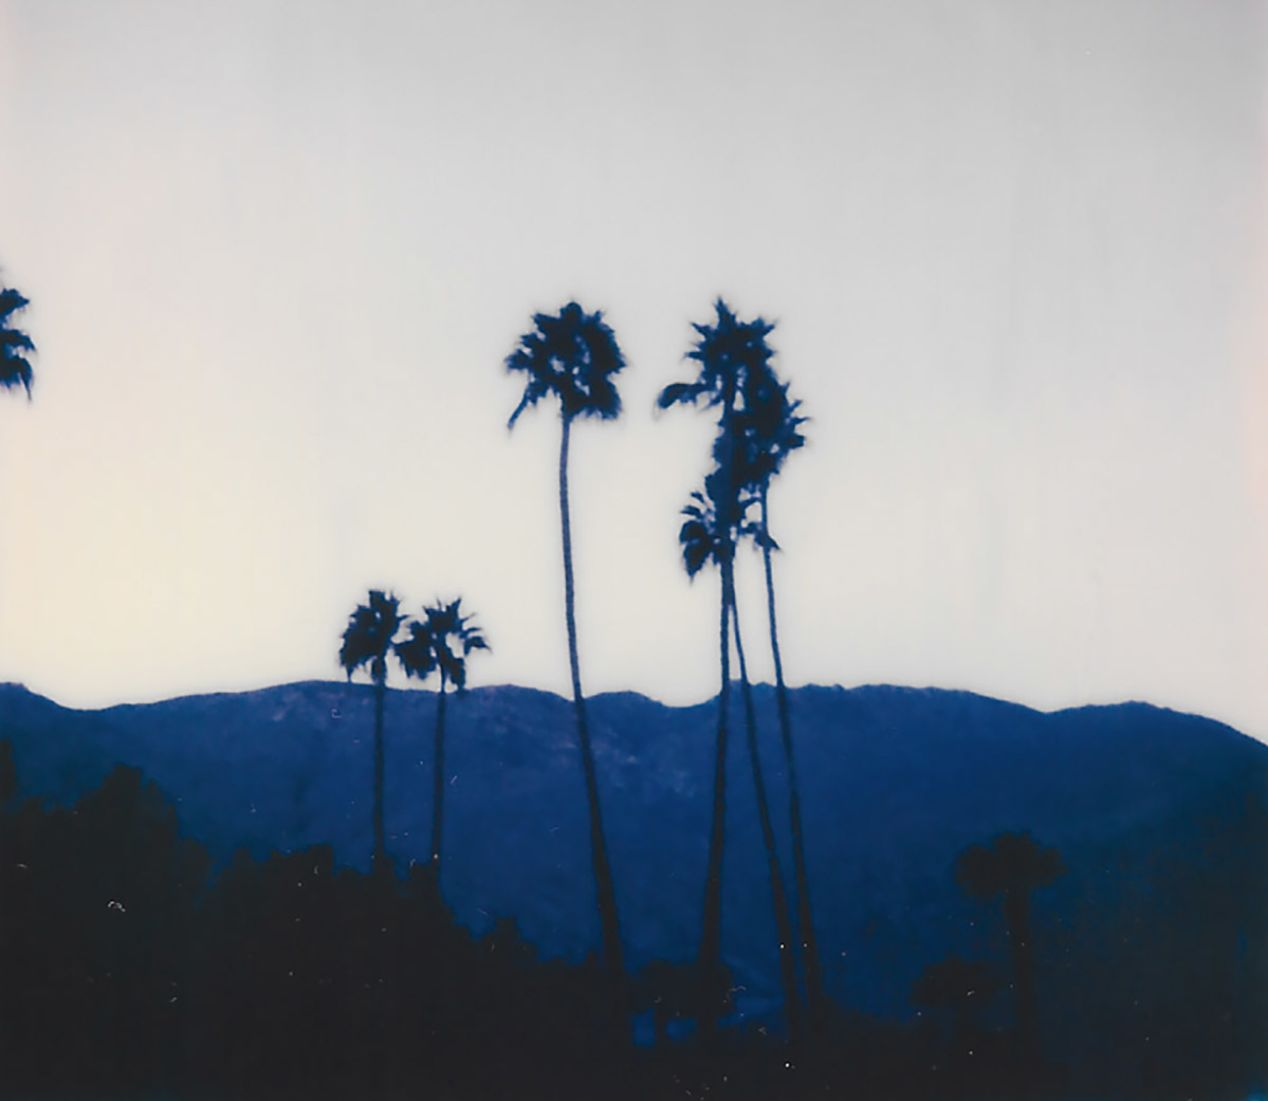 Early Morning in Palm Springs, California. Taken with a Polaroid 600 Camera and Polaroid Originals 600 Film